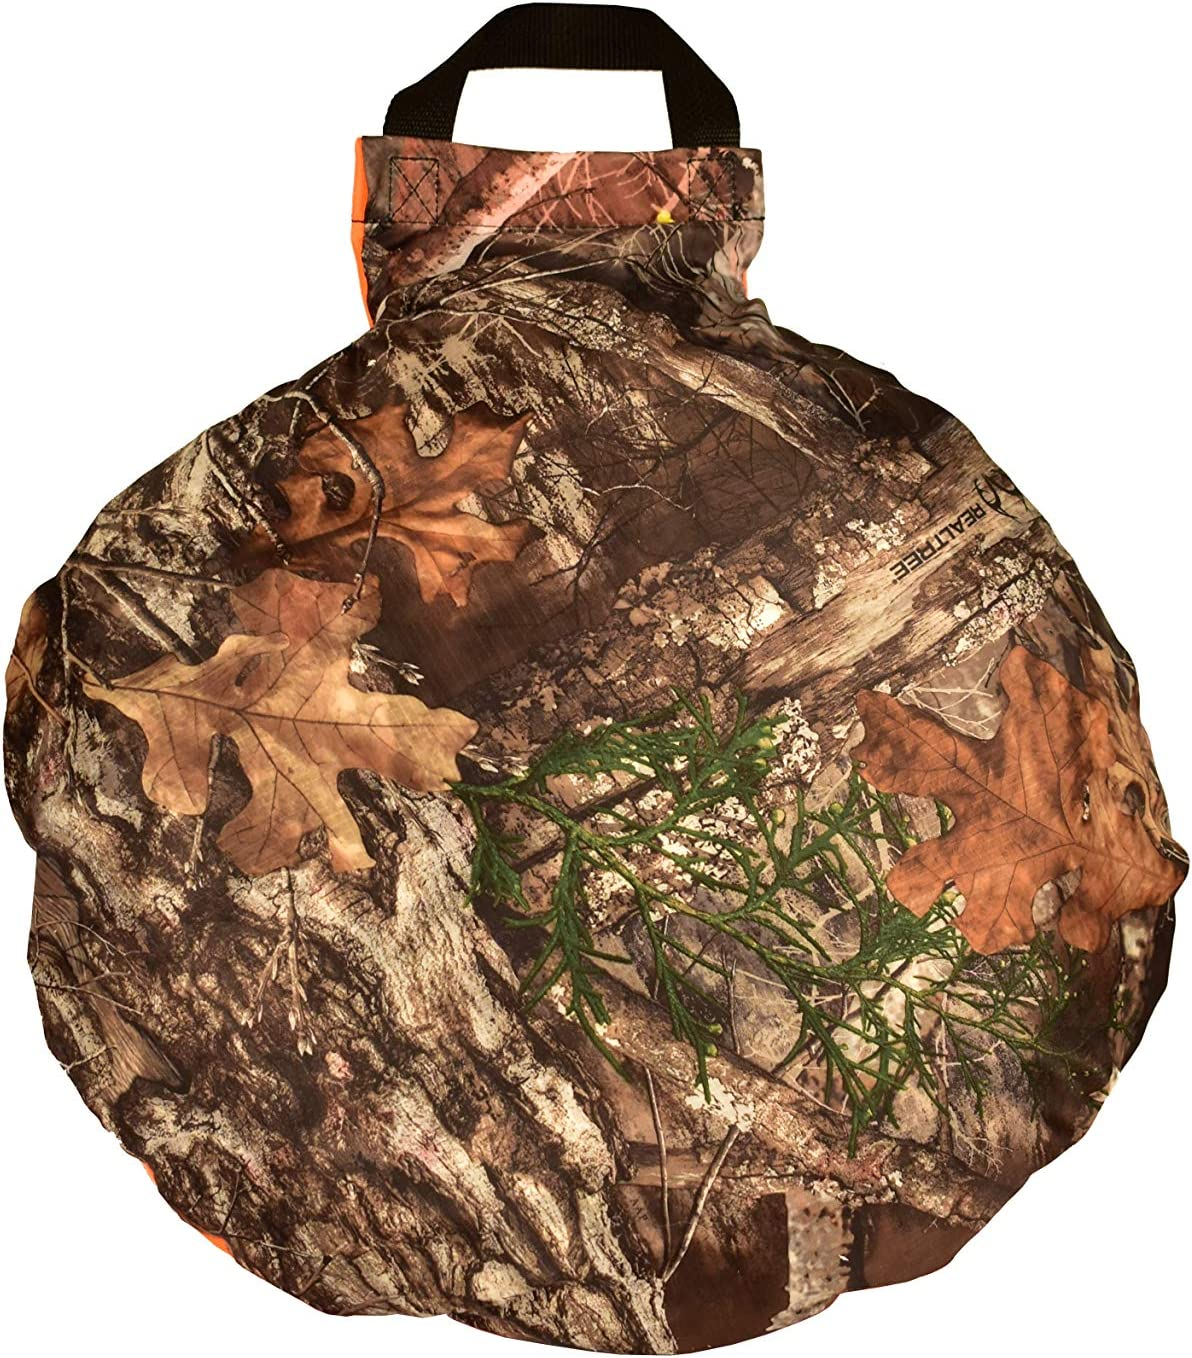 Northeast Therm-A-SEAT Heat-a-Seat Insulated best Hunting Seat Cushion/Pillow